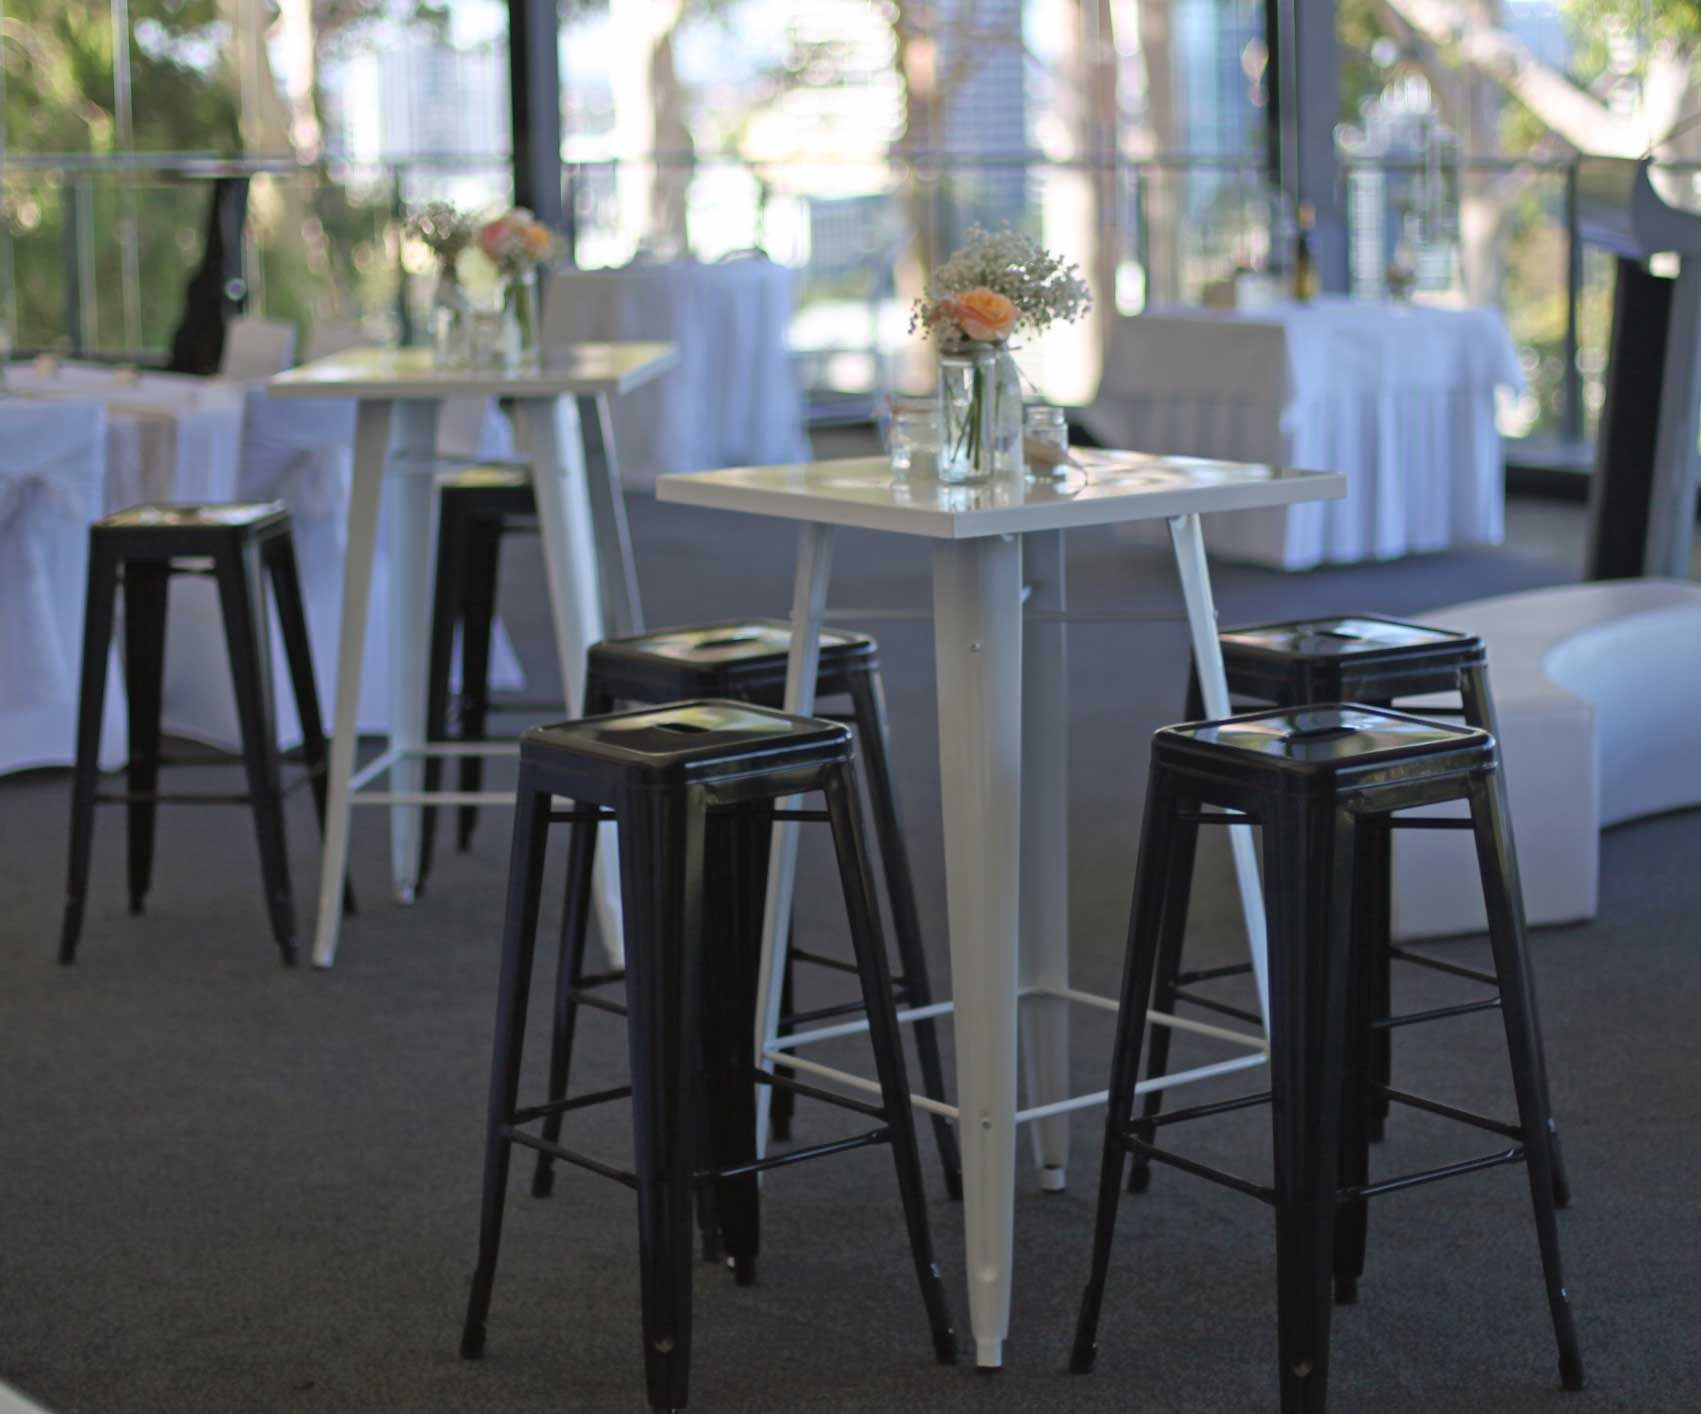 tolix furniture reception pinterest bar stool bar and stools